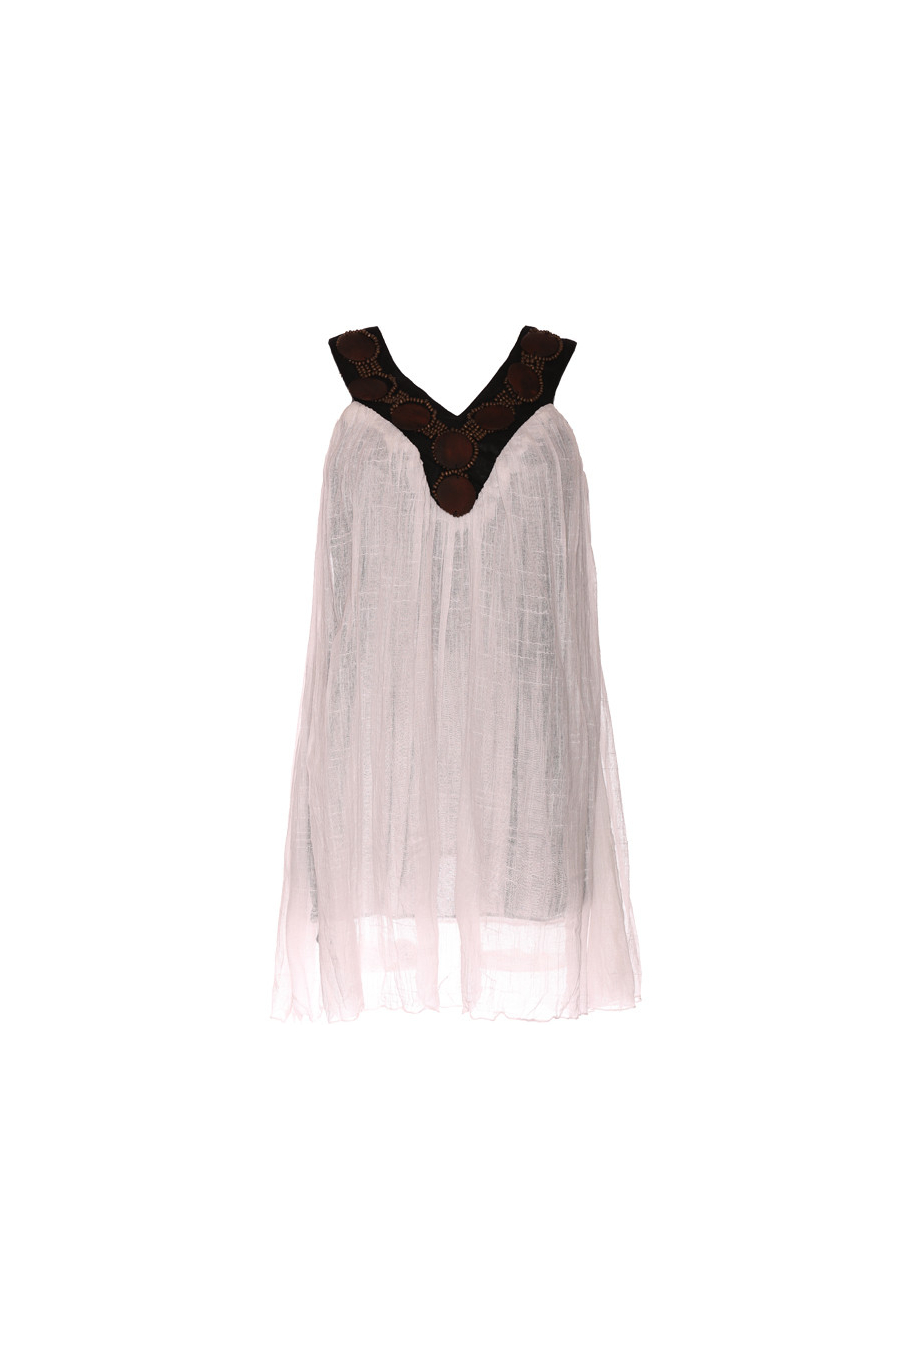 Women's white tunic with brown pearls at the collar. Fashion woman clothes. 1319